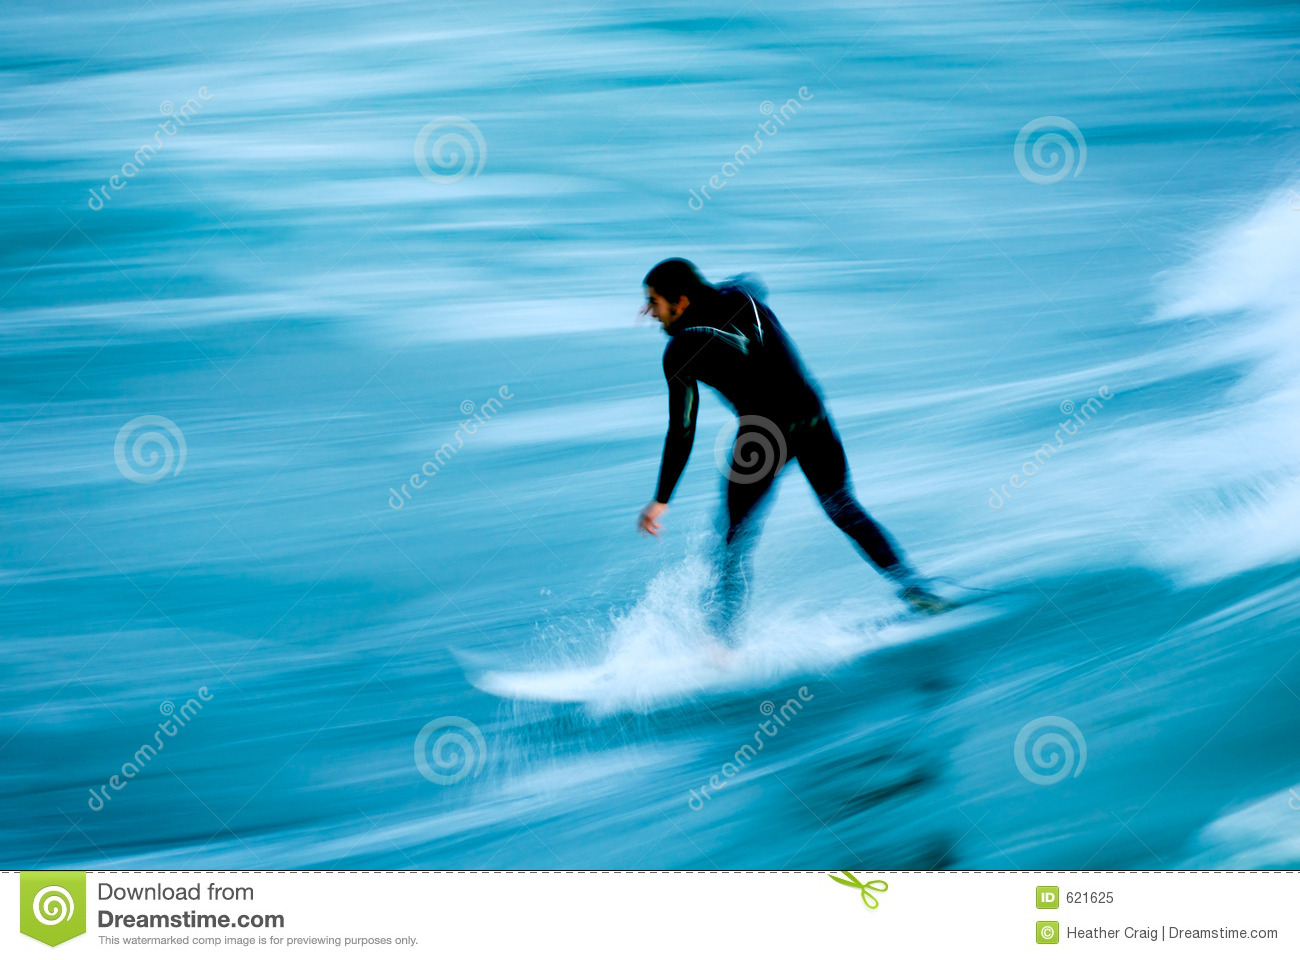 speed blur surf photos - photo #47